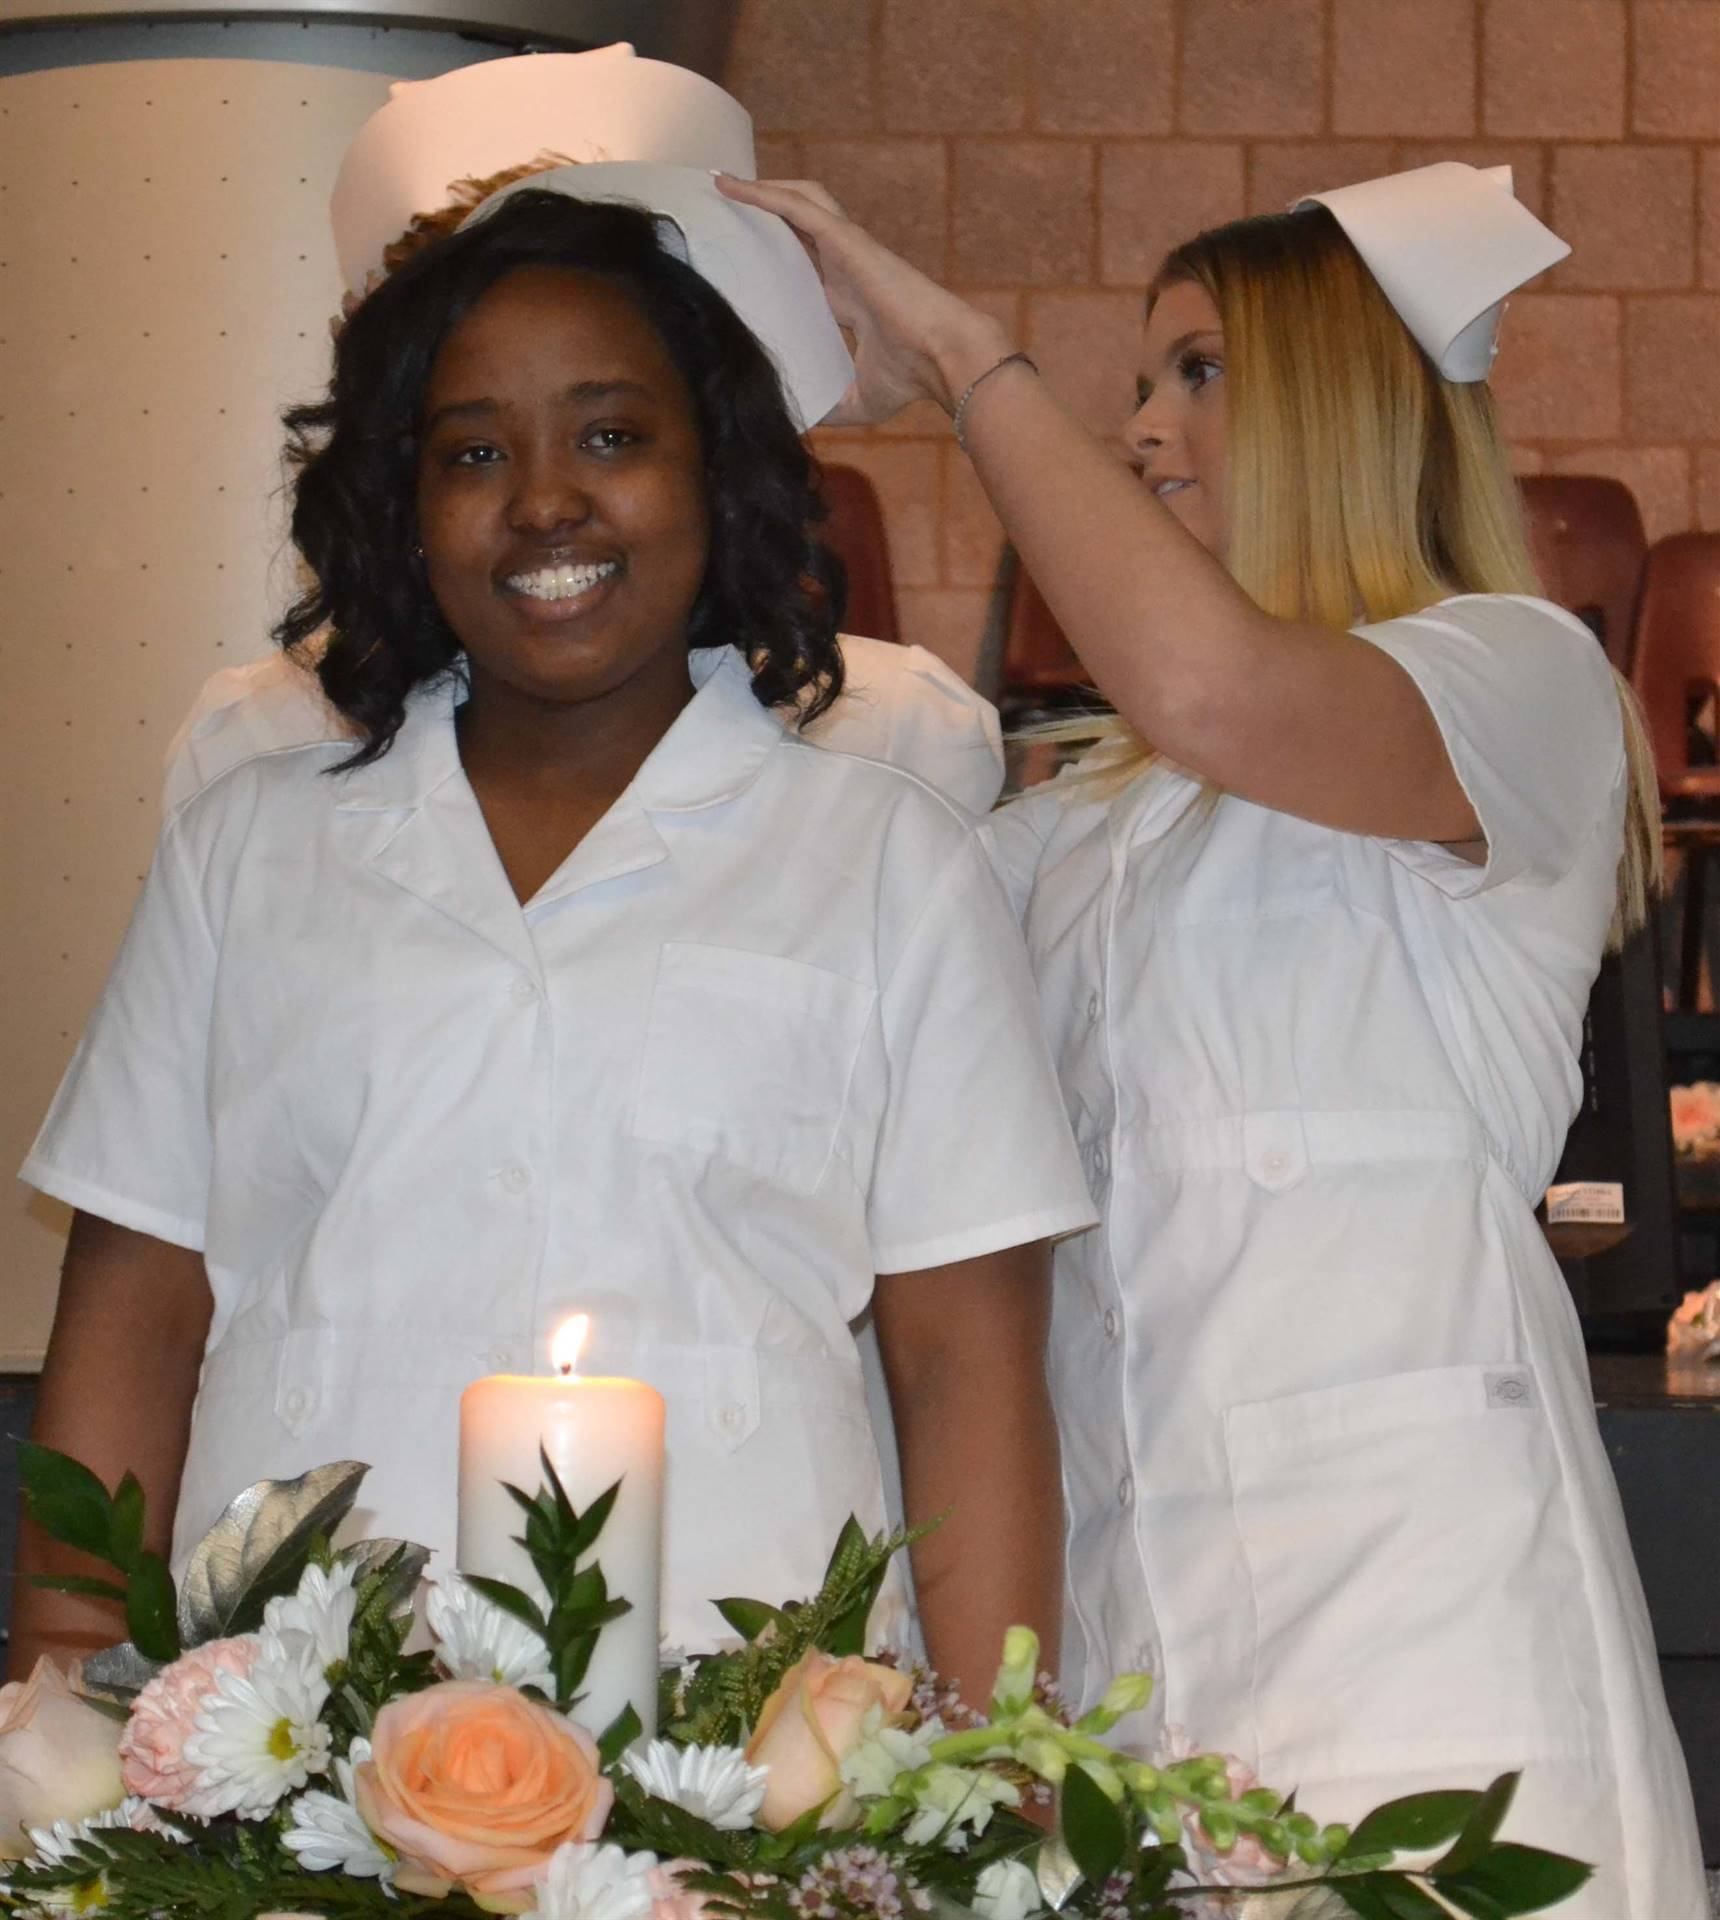 May 10, 2018 Dental Pinning and Capping Ceremony